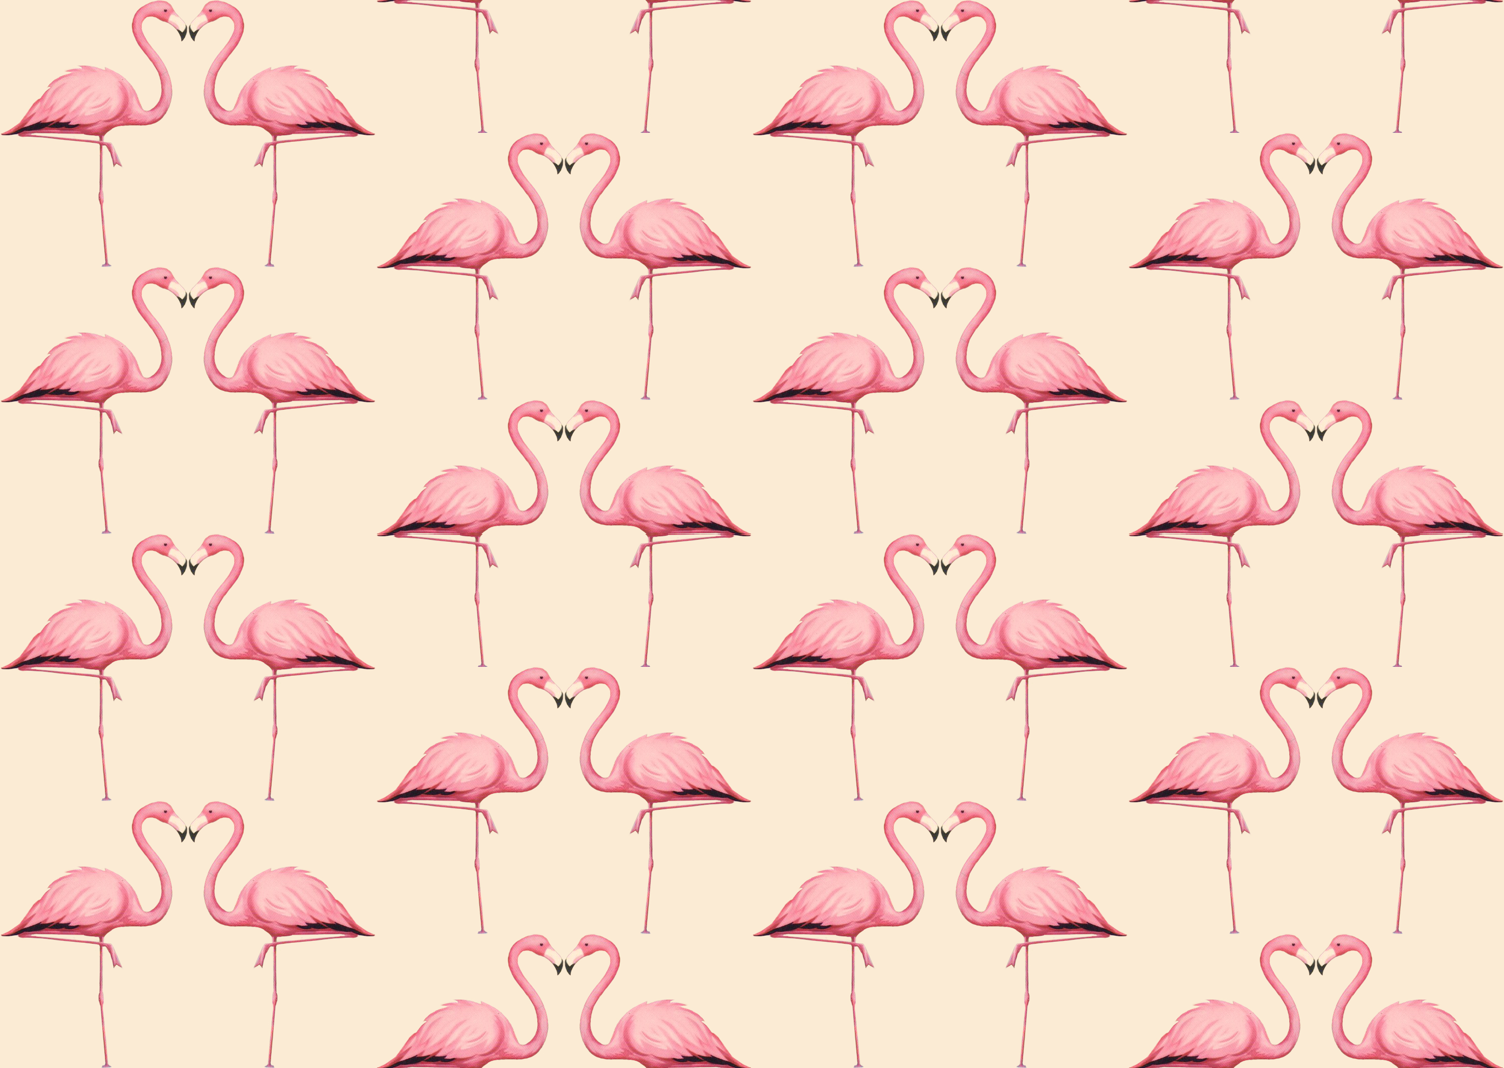 PC, Laptop Flamingo Wallpapers, BsnSCB Gallery